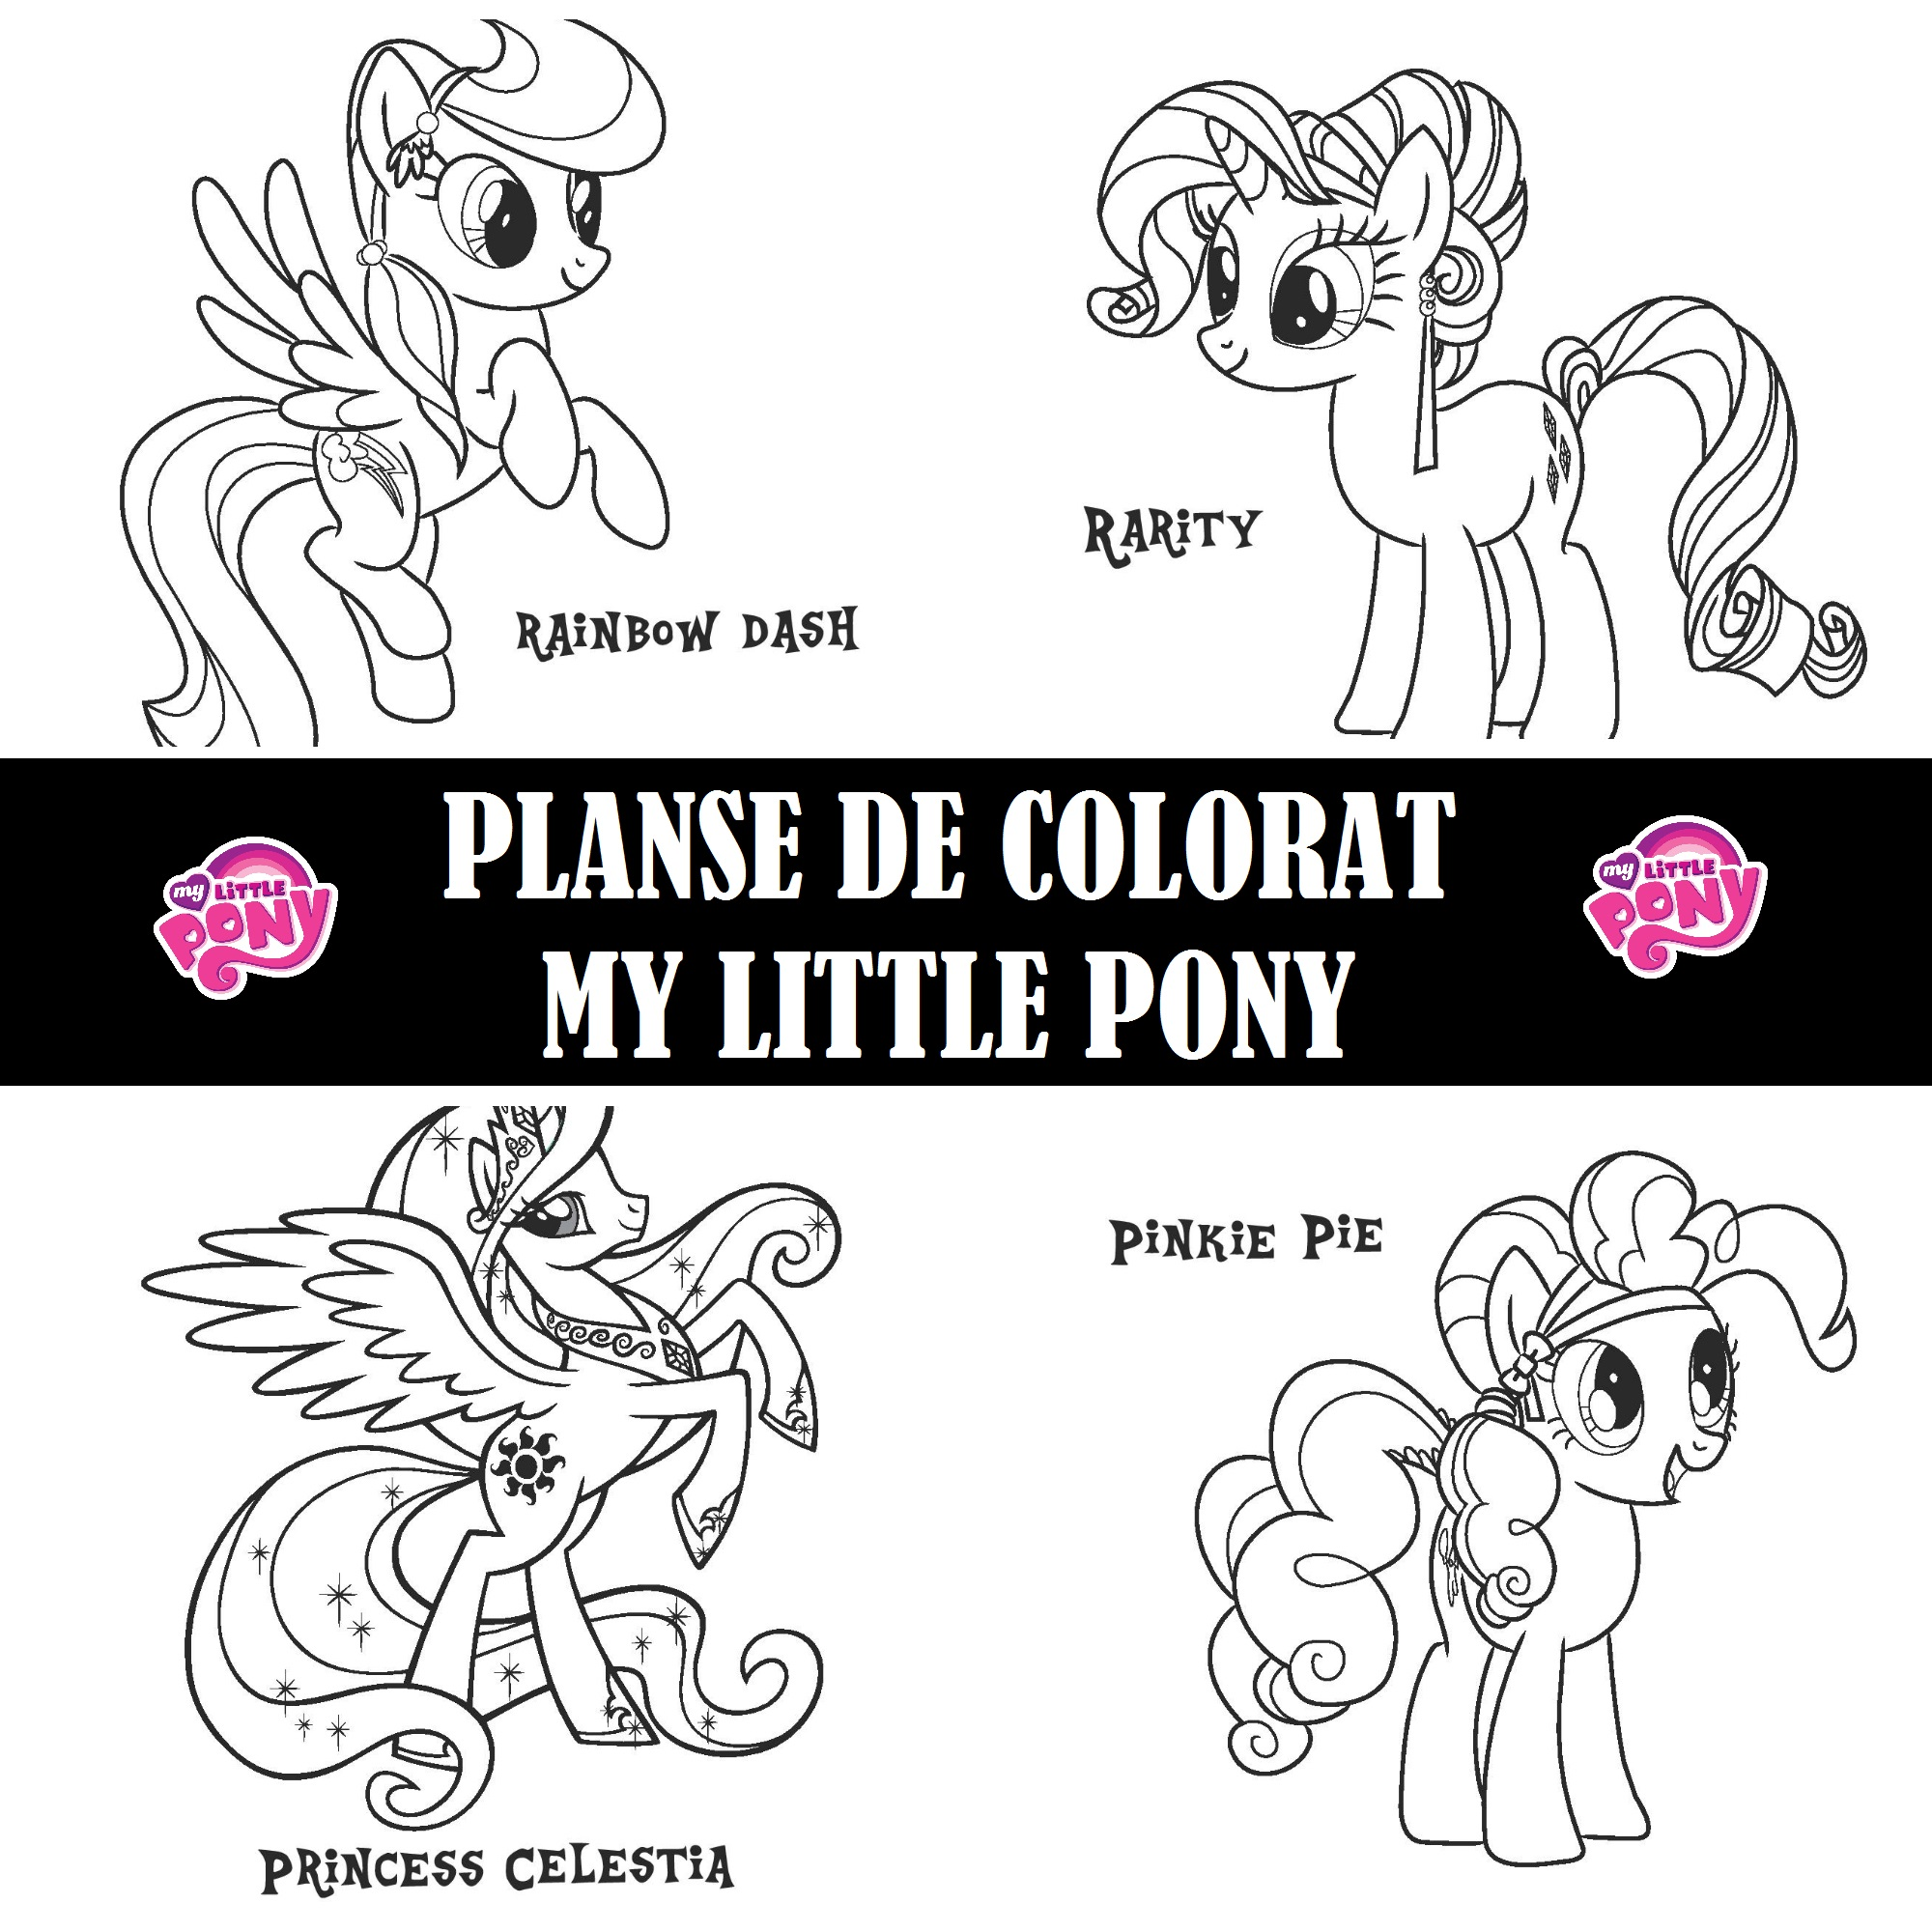 Planse De Colorat Cu Micii Ponei My Little Pony on princess celestia and twilight sparkle